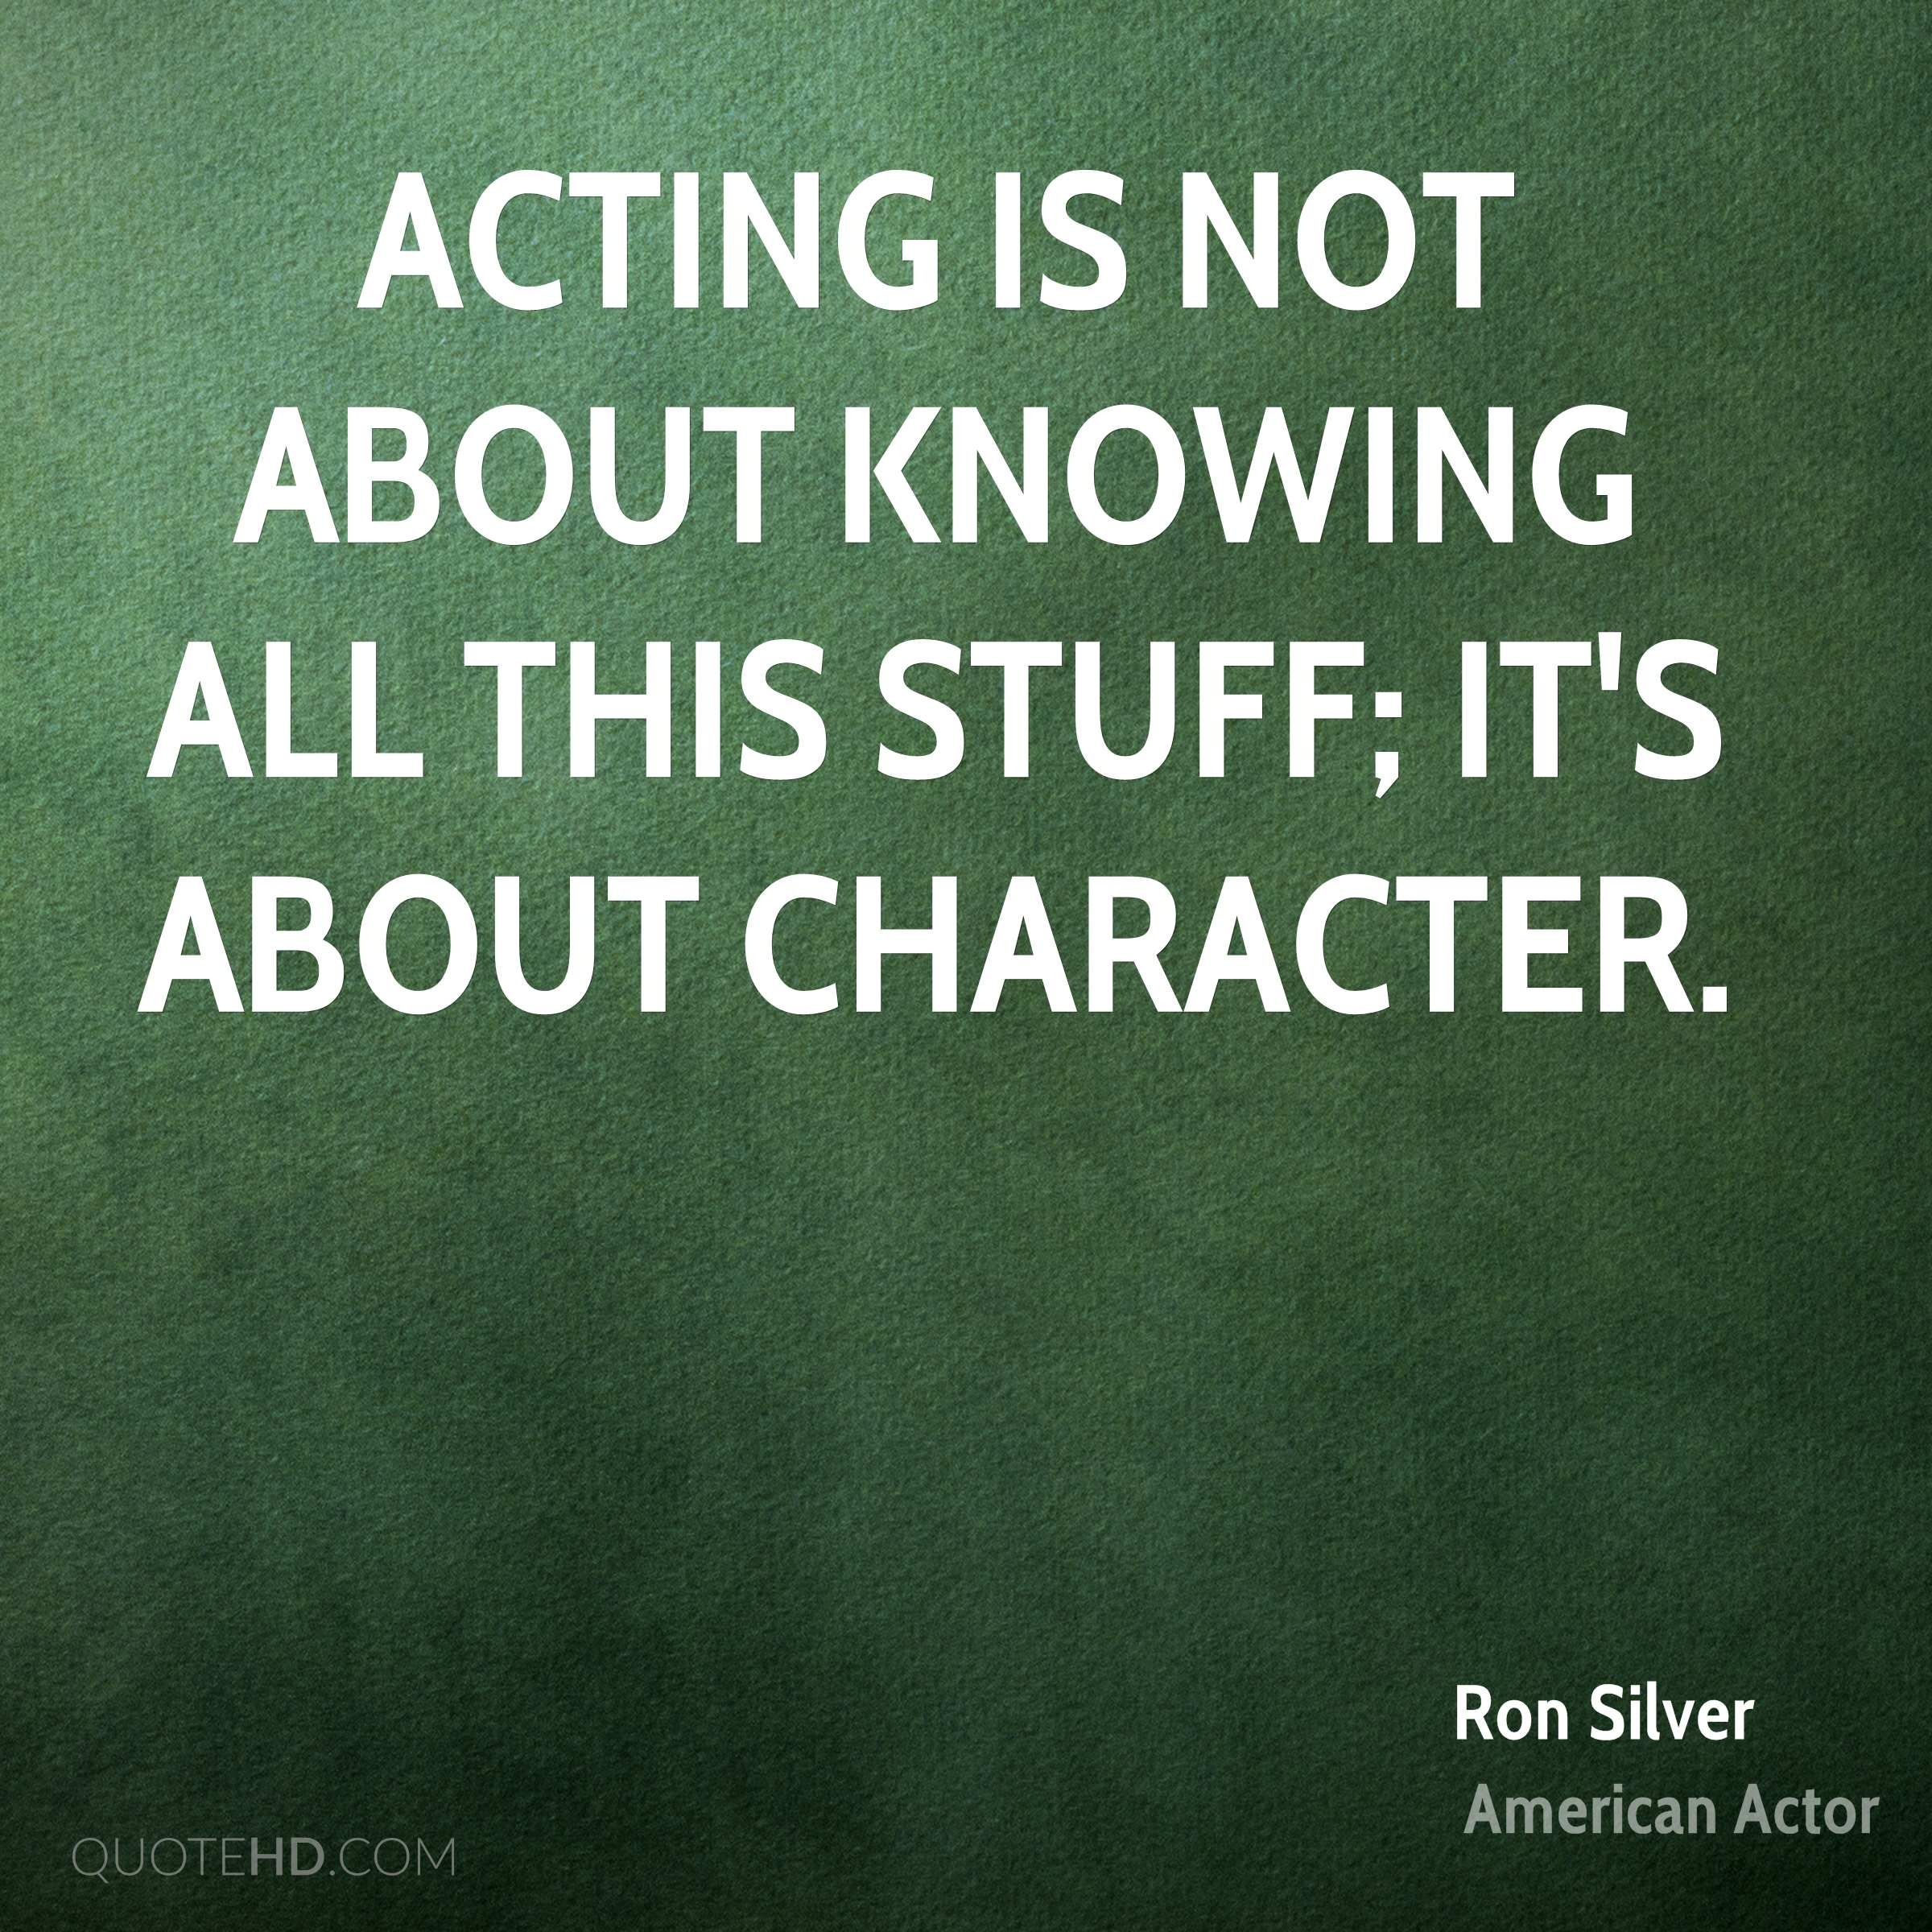 Acting is not about knowing all this stuff; it's about character.